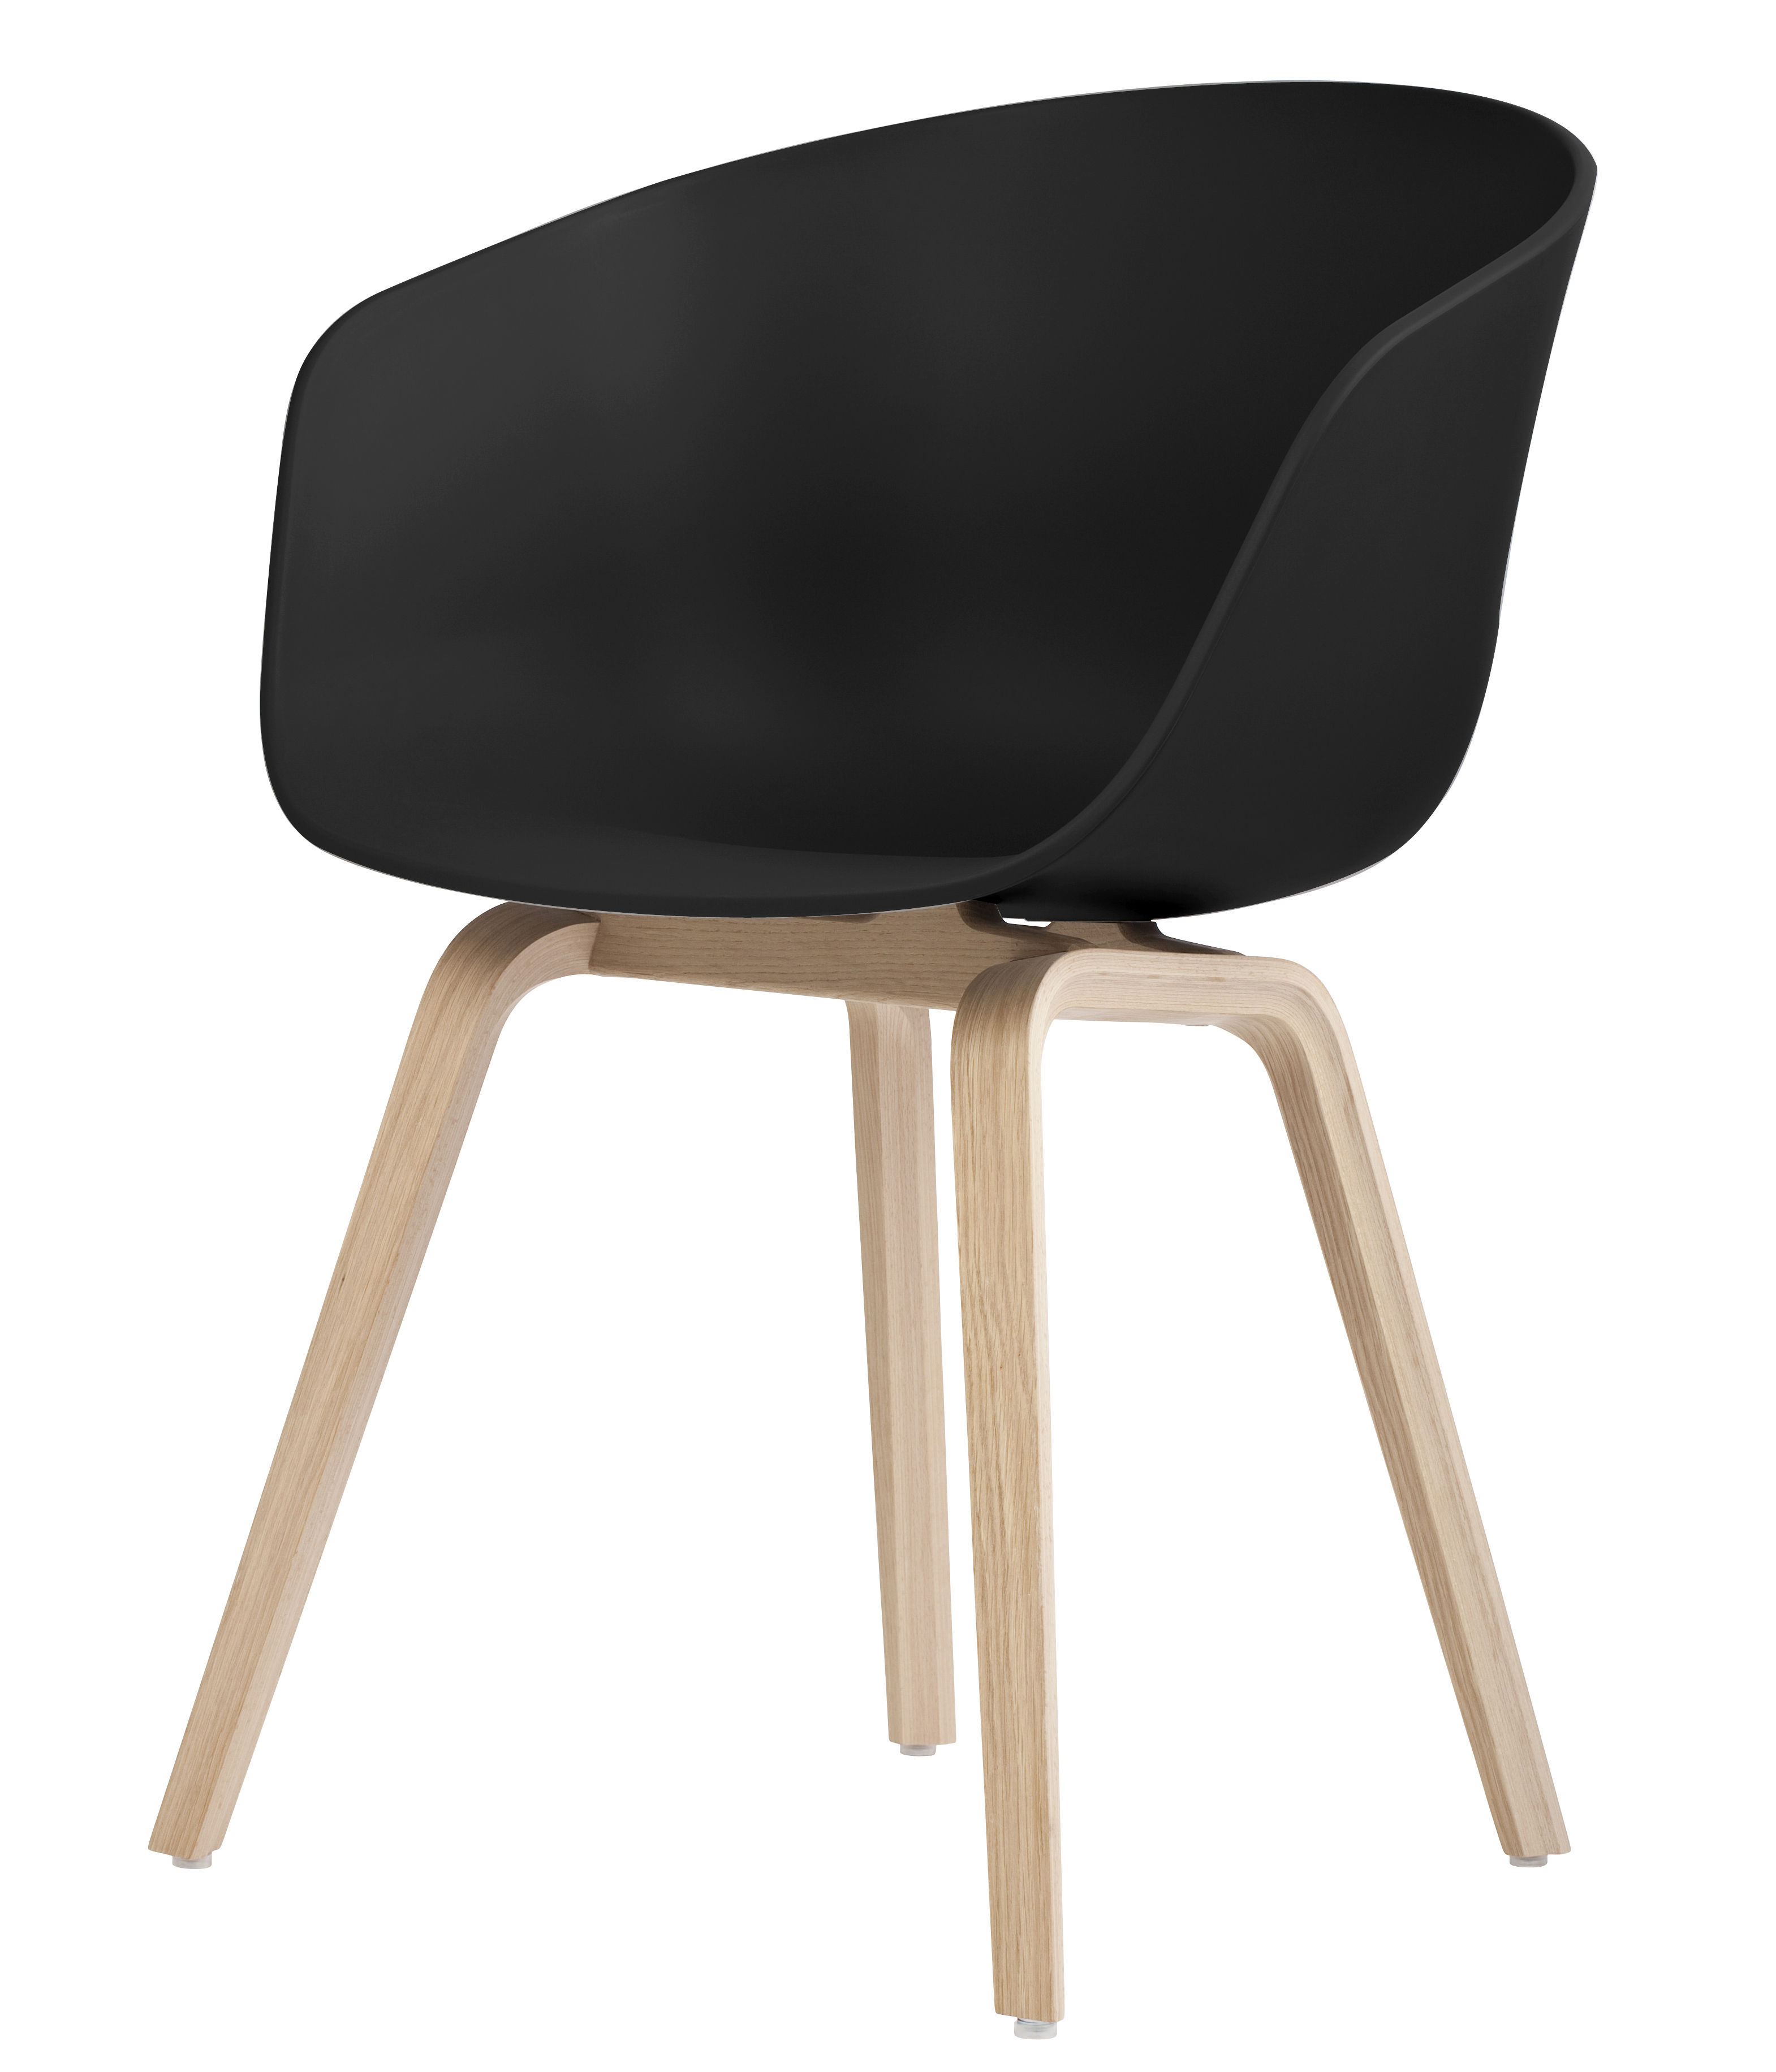 about a chair aac22 armchair plastic shell wood legs black natural wood feet by hay. Black Bedroom Furniture Sets. Home Design Ideas